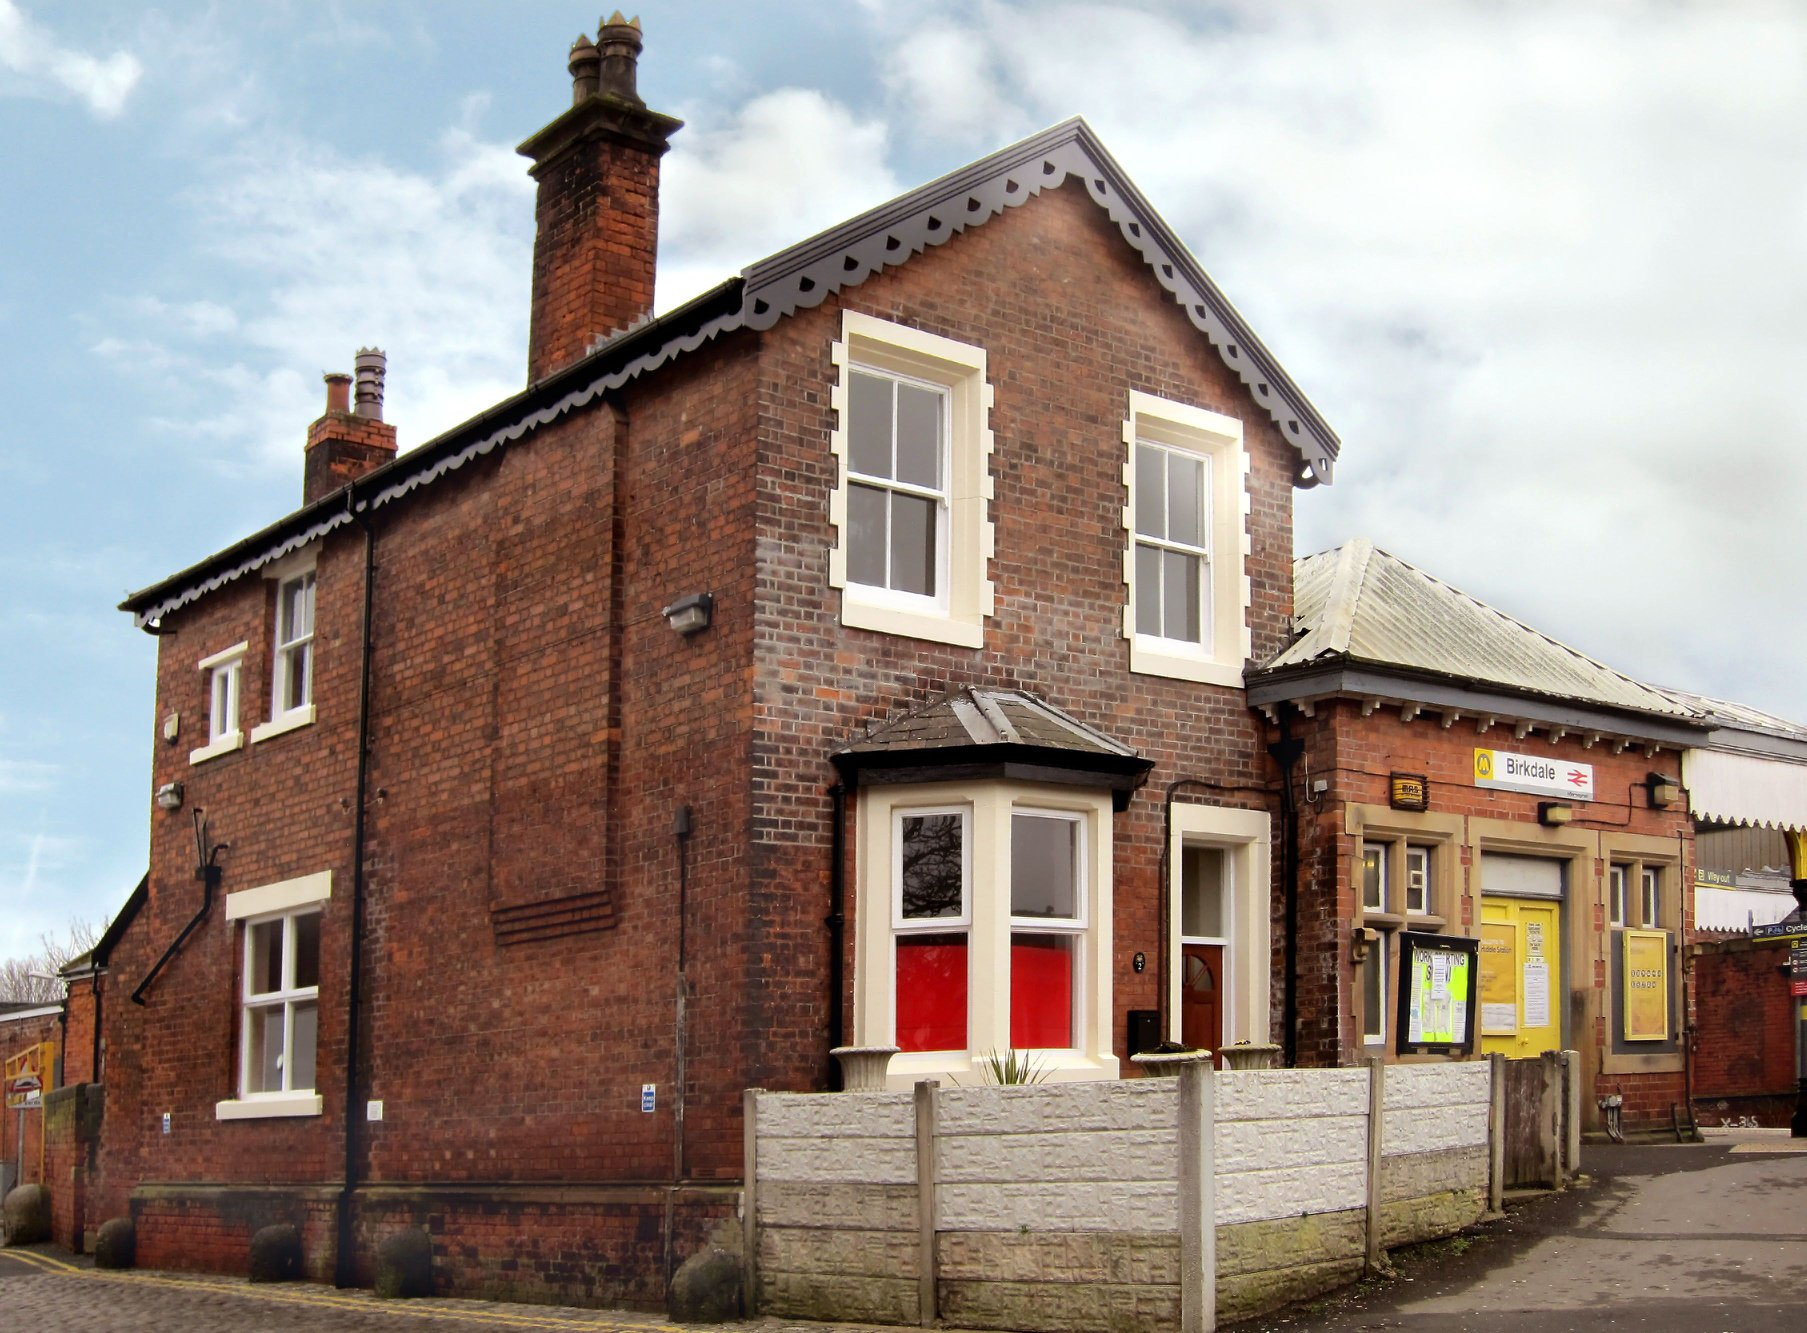 Birkdale Community Hub and Library at the old Station Master's House at Birkdale Railway Station in Southport